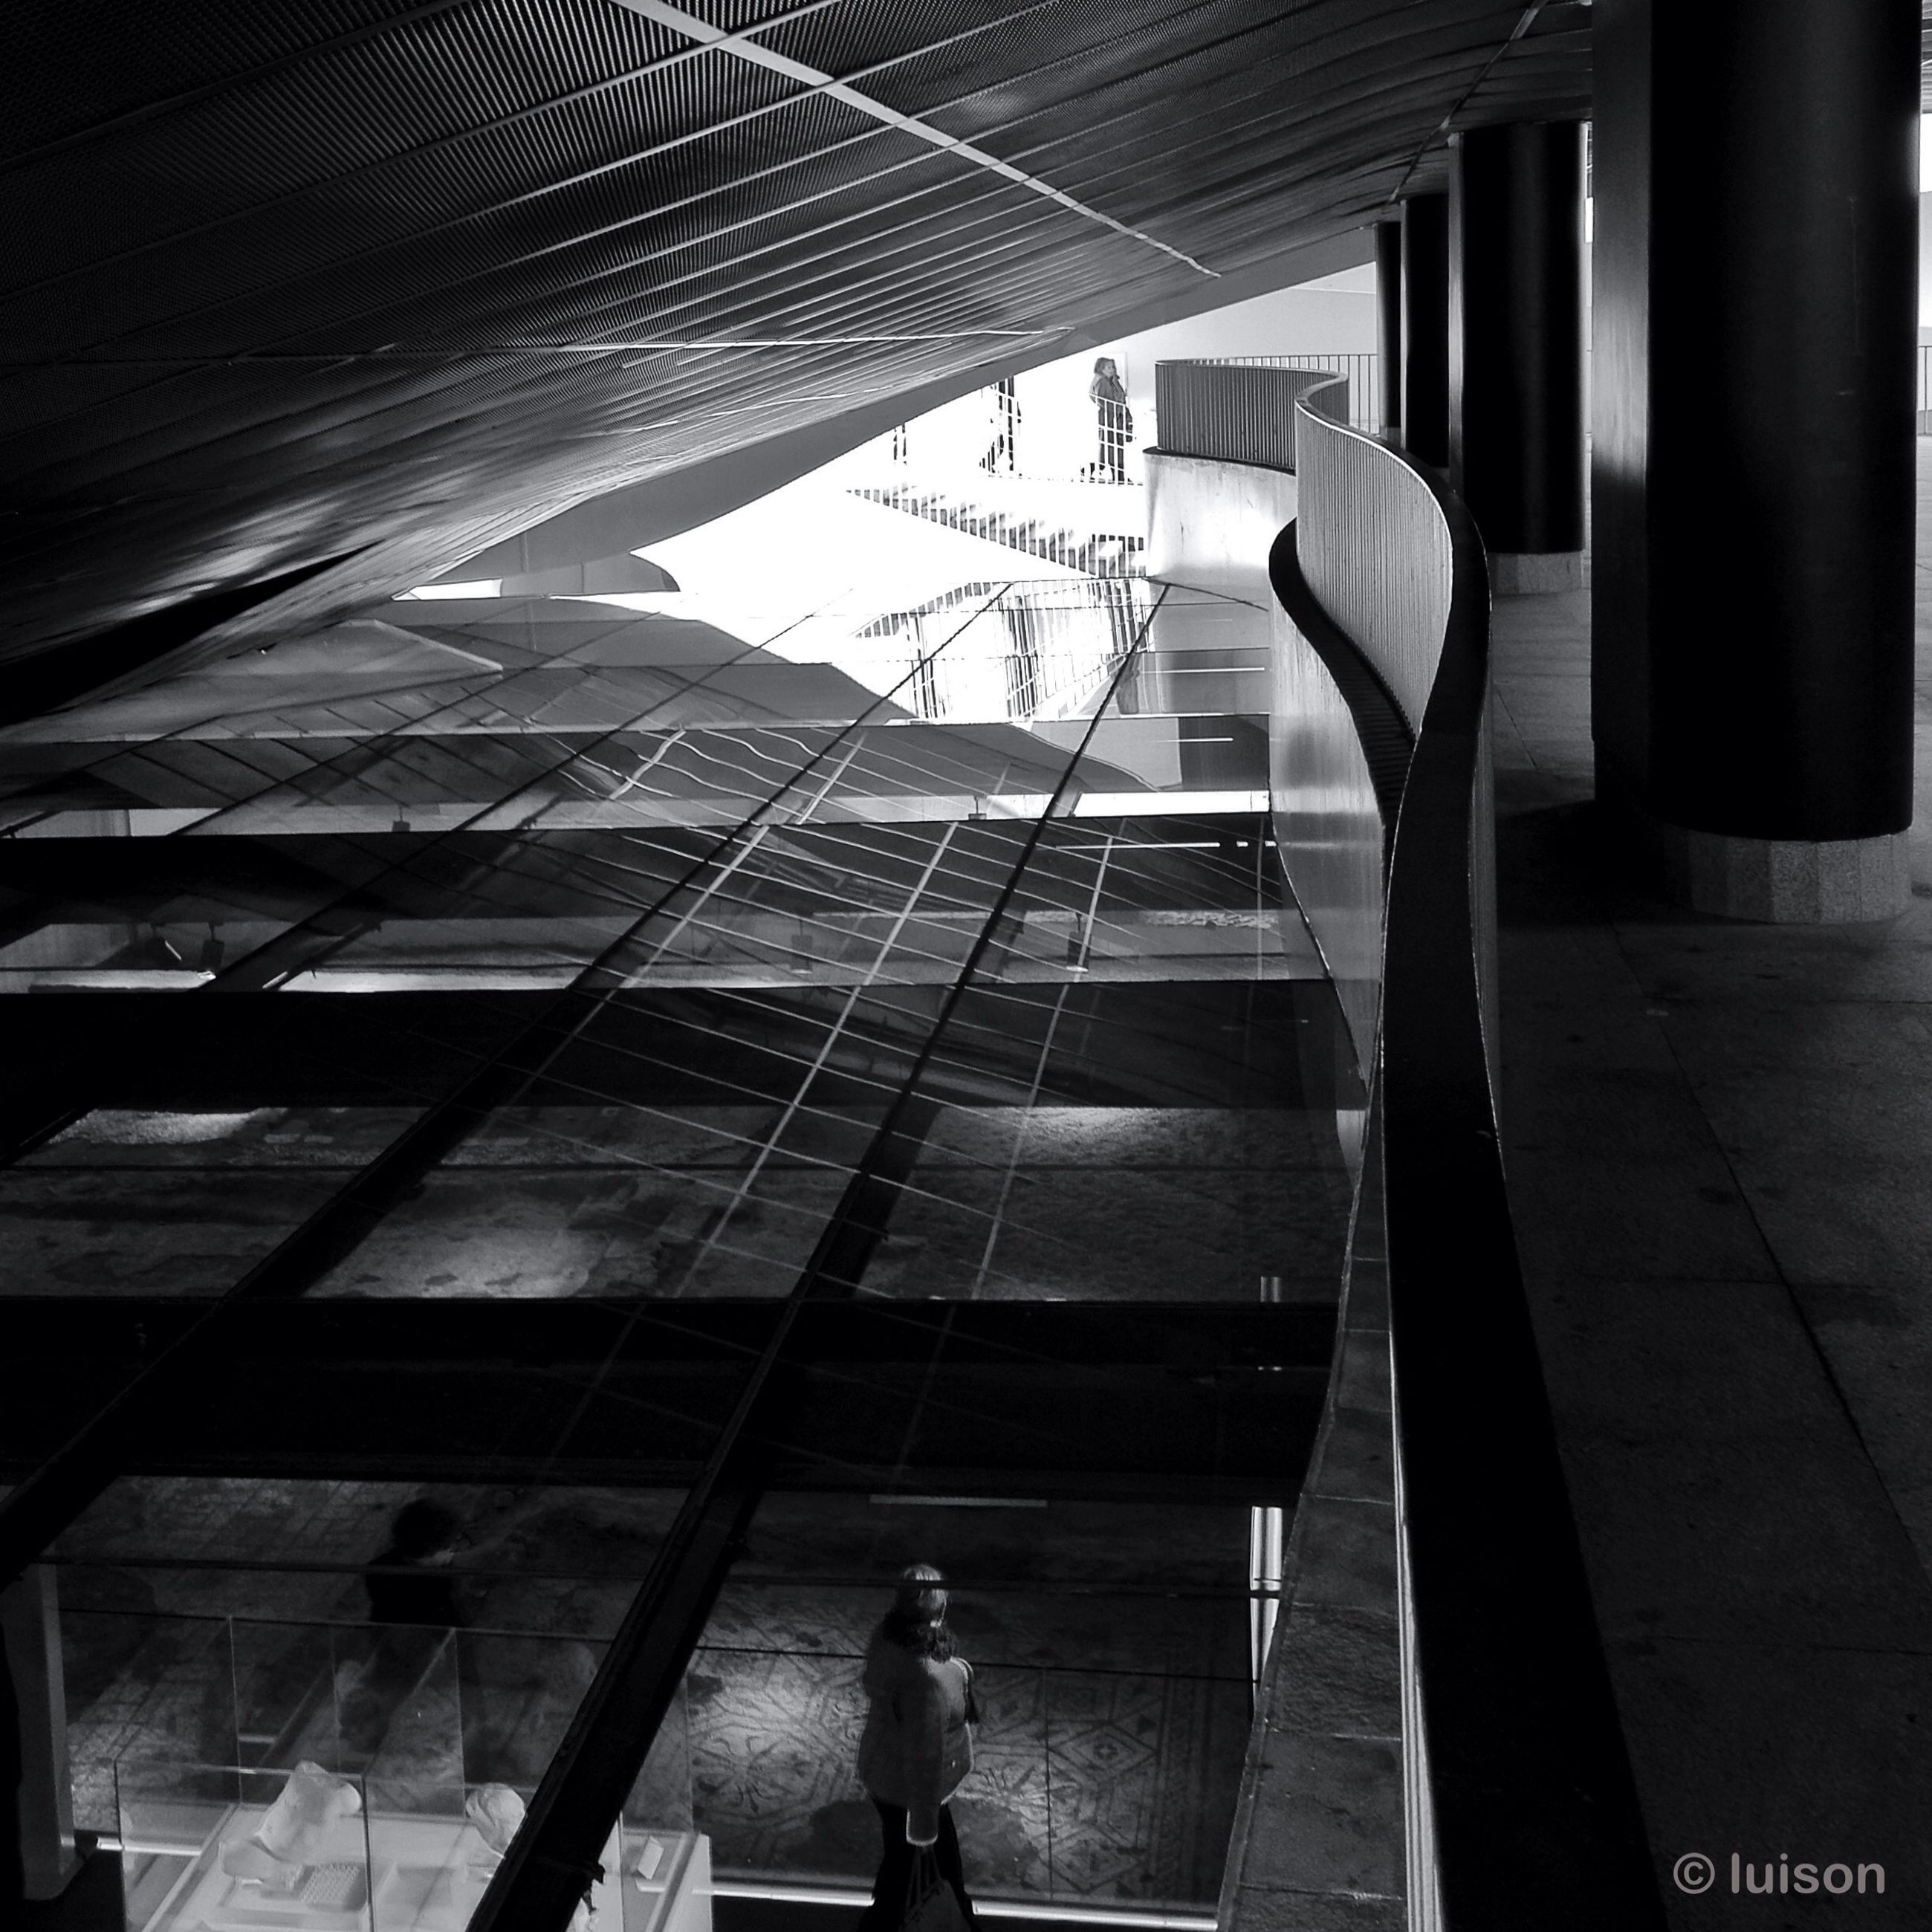 indoors, lifestyles, architecture, built structure, leisure activity, men, person, standing, steps, staircase, steps and staircases, walking, railing, modern, rear view, full length, building, casual clothing